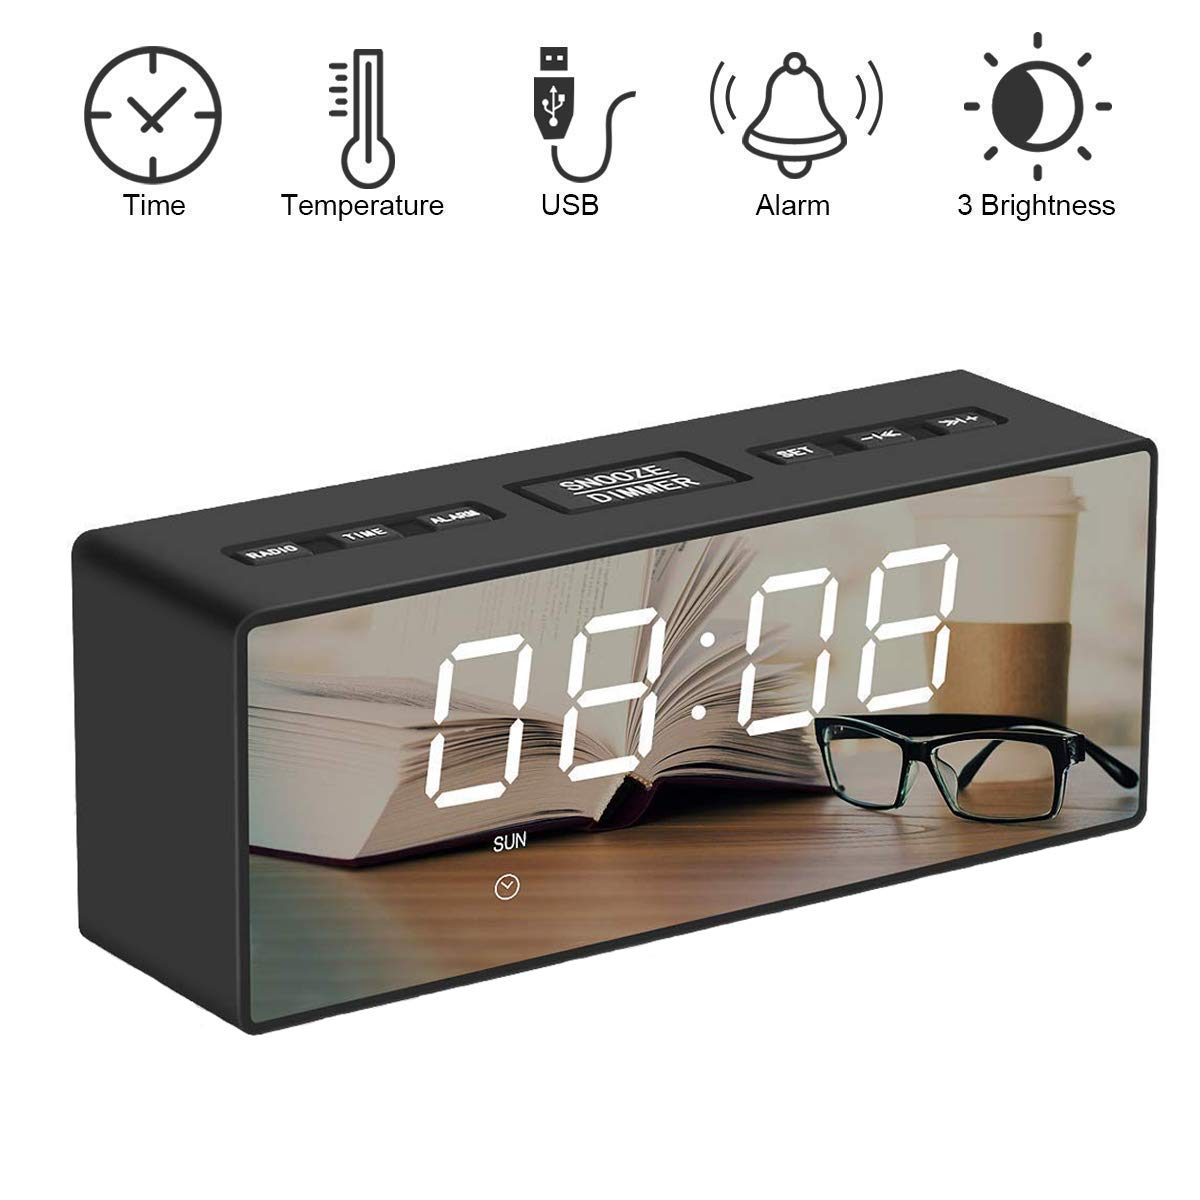 SUNSEATON Digital Alarm Clock with FM Radio Dual USB Port Charging Office Portable Mirror LED Display with Time//Date//Temperature Function Dual Alarms 3 Adjustable Brightness for Bedroom